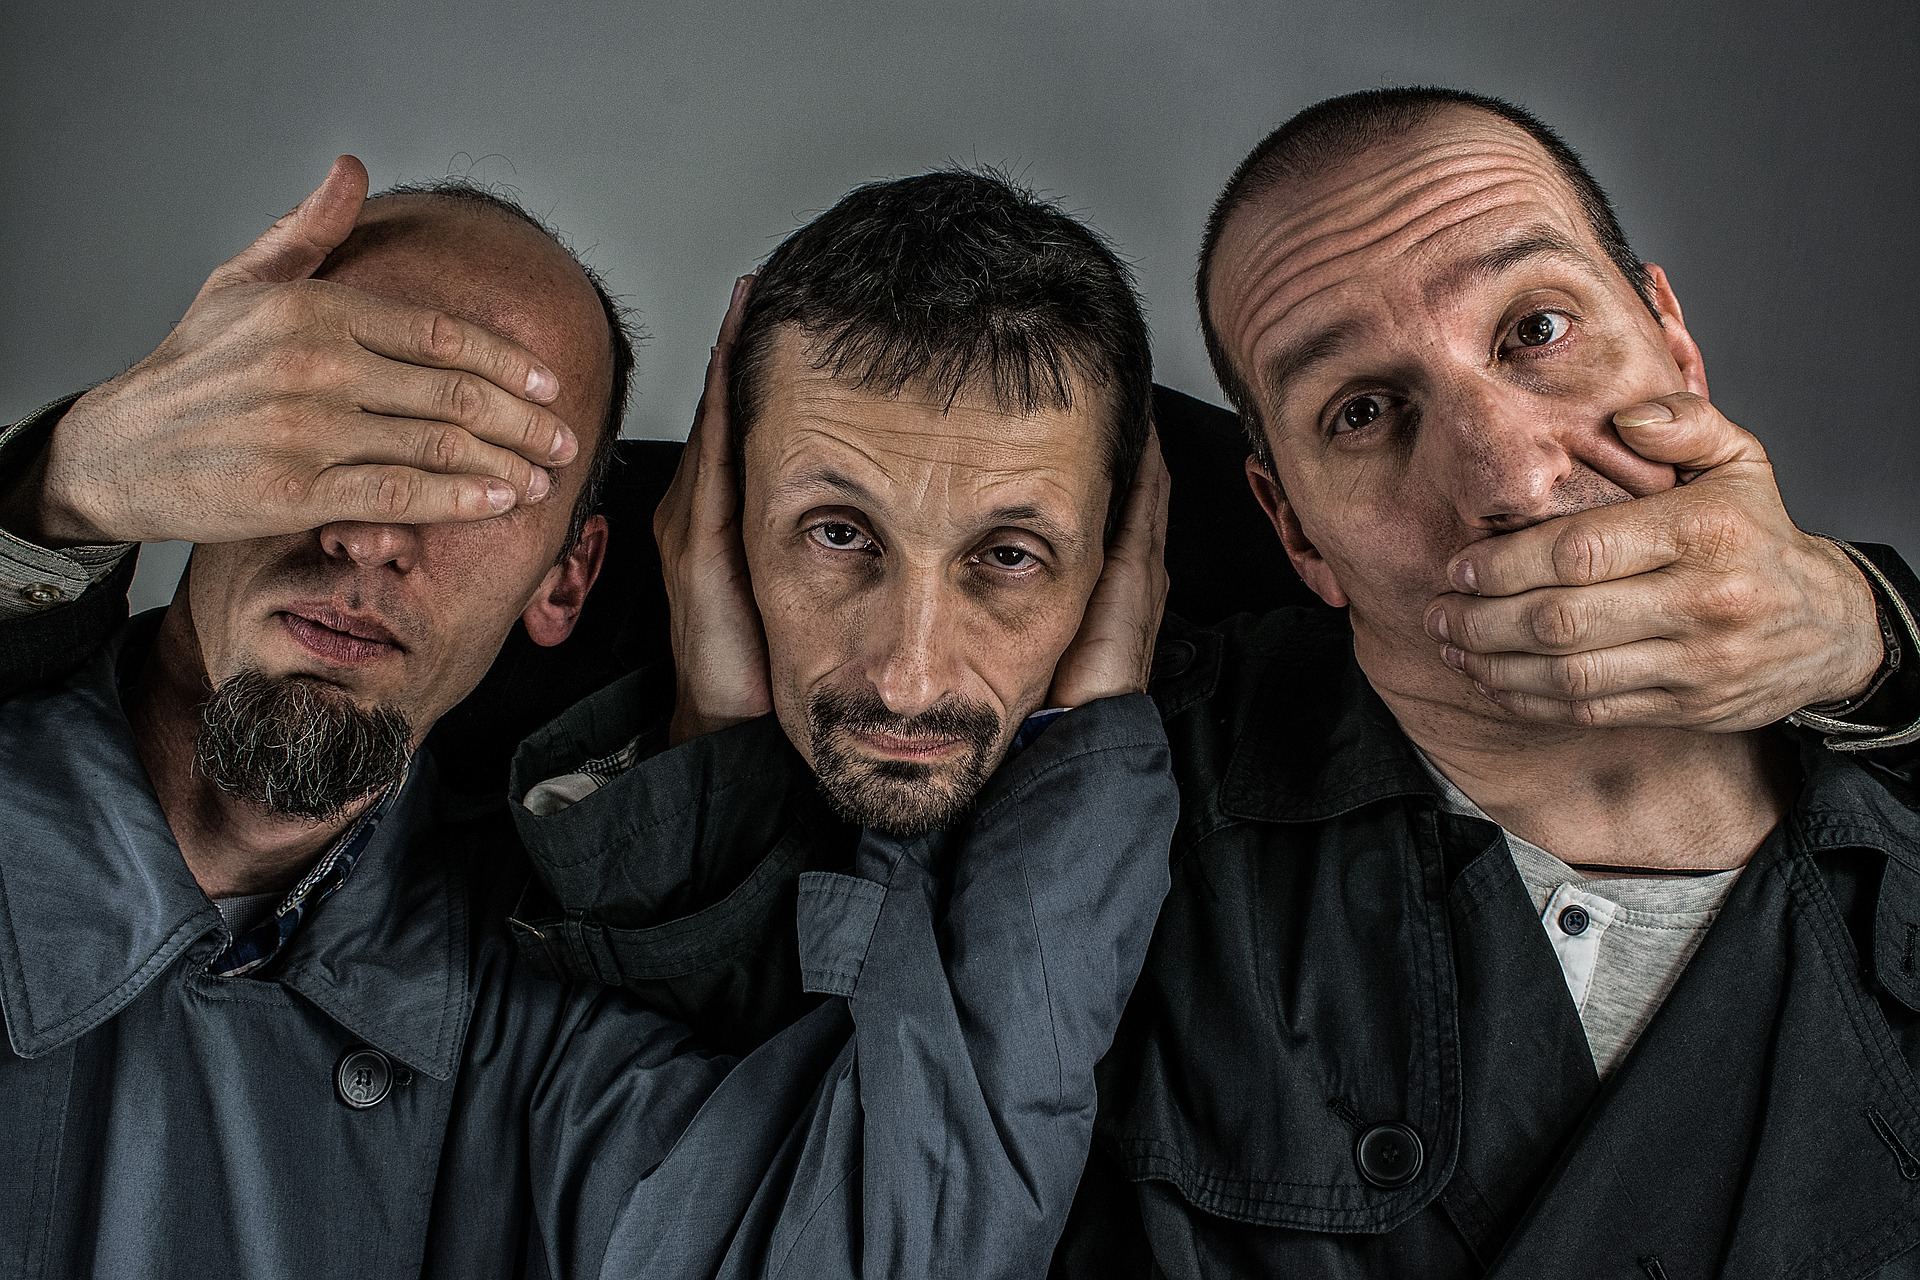 Hear no evil, see no evil and speak no evil